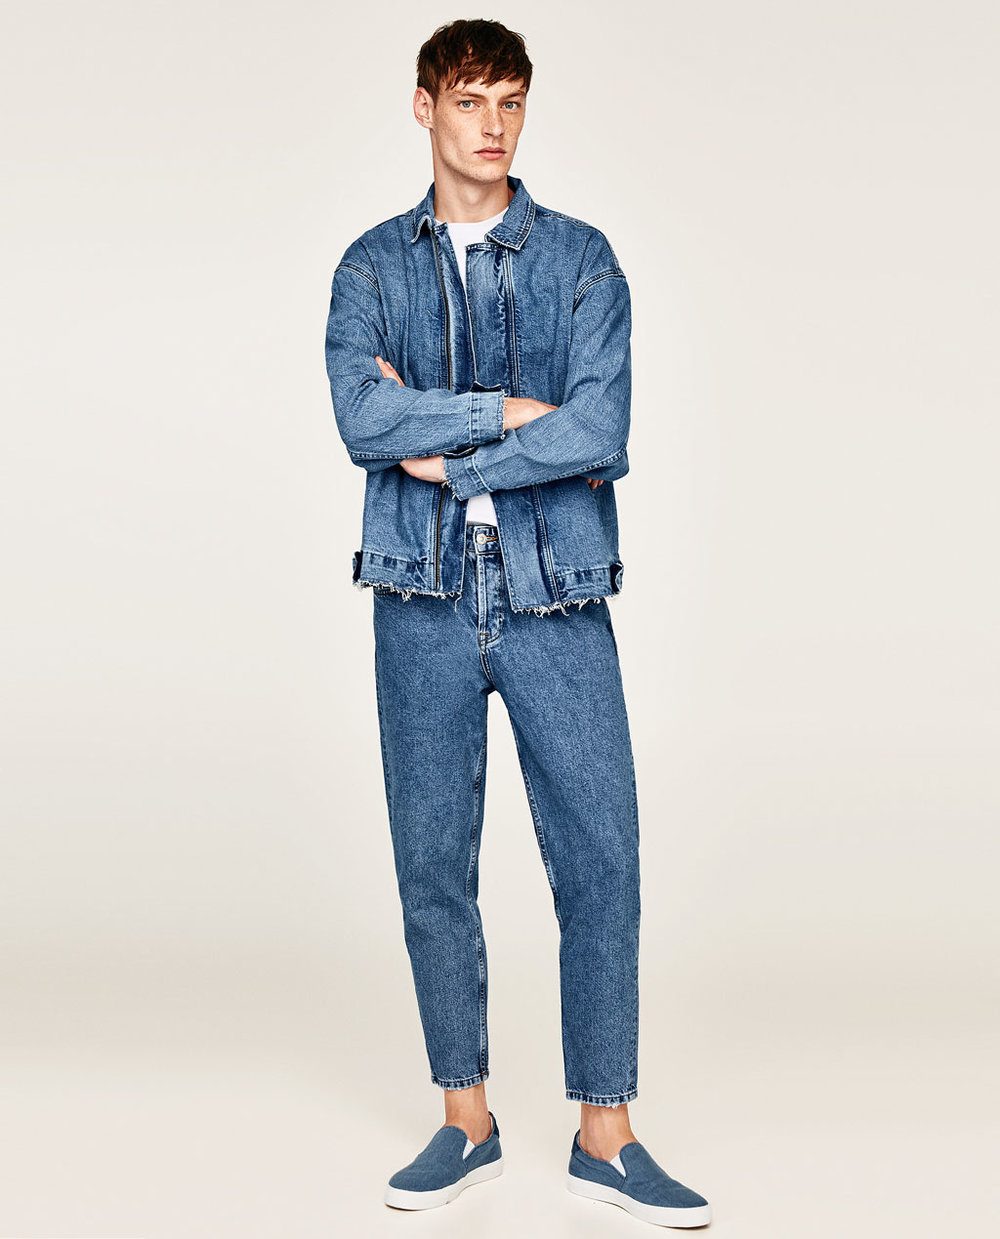 Zara Denim Essentials Jacket